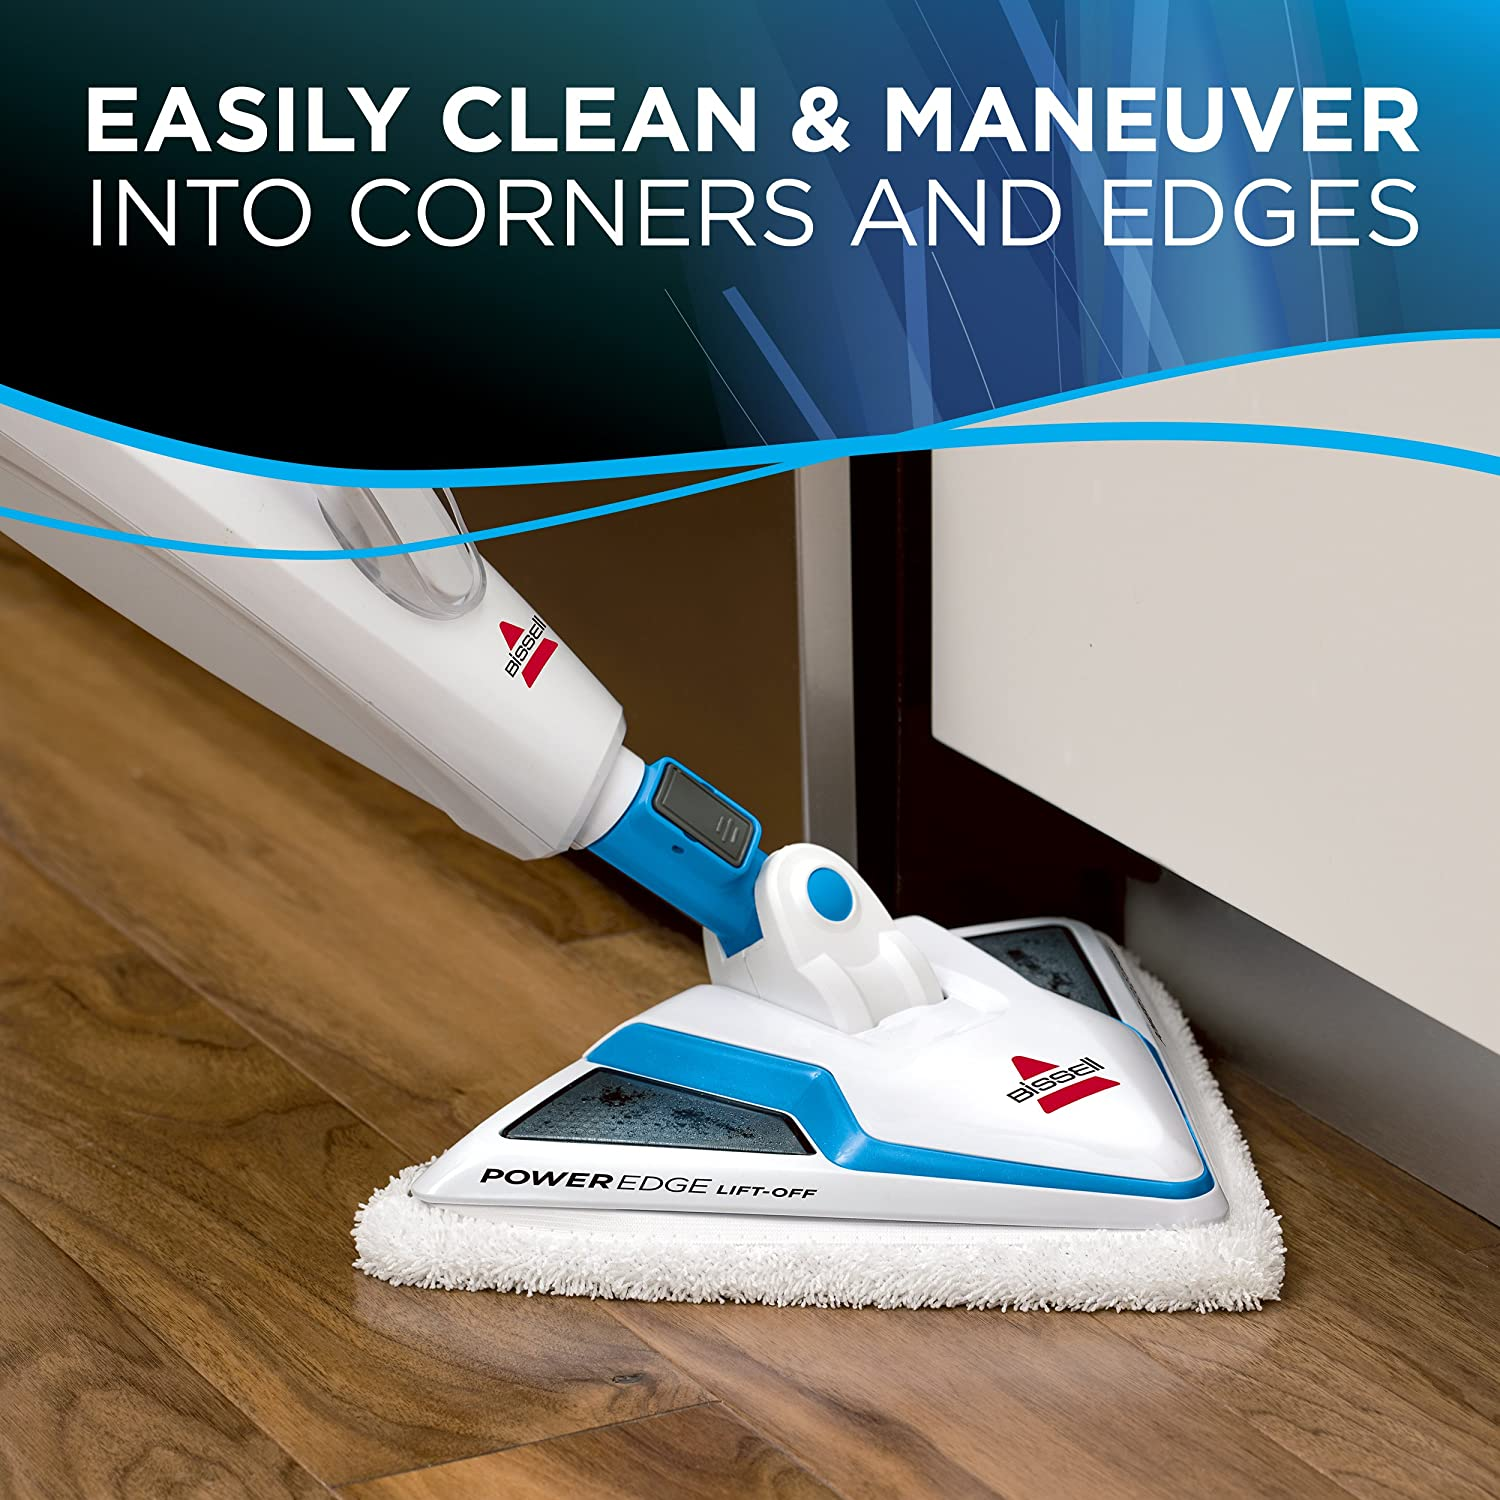 Bissell PowerEdge Lift Off Hard Wood Floor Cleaner, Tile Cleaner Steam Mop with Microfiber Pads